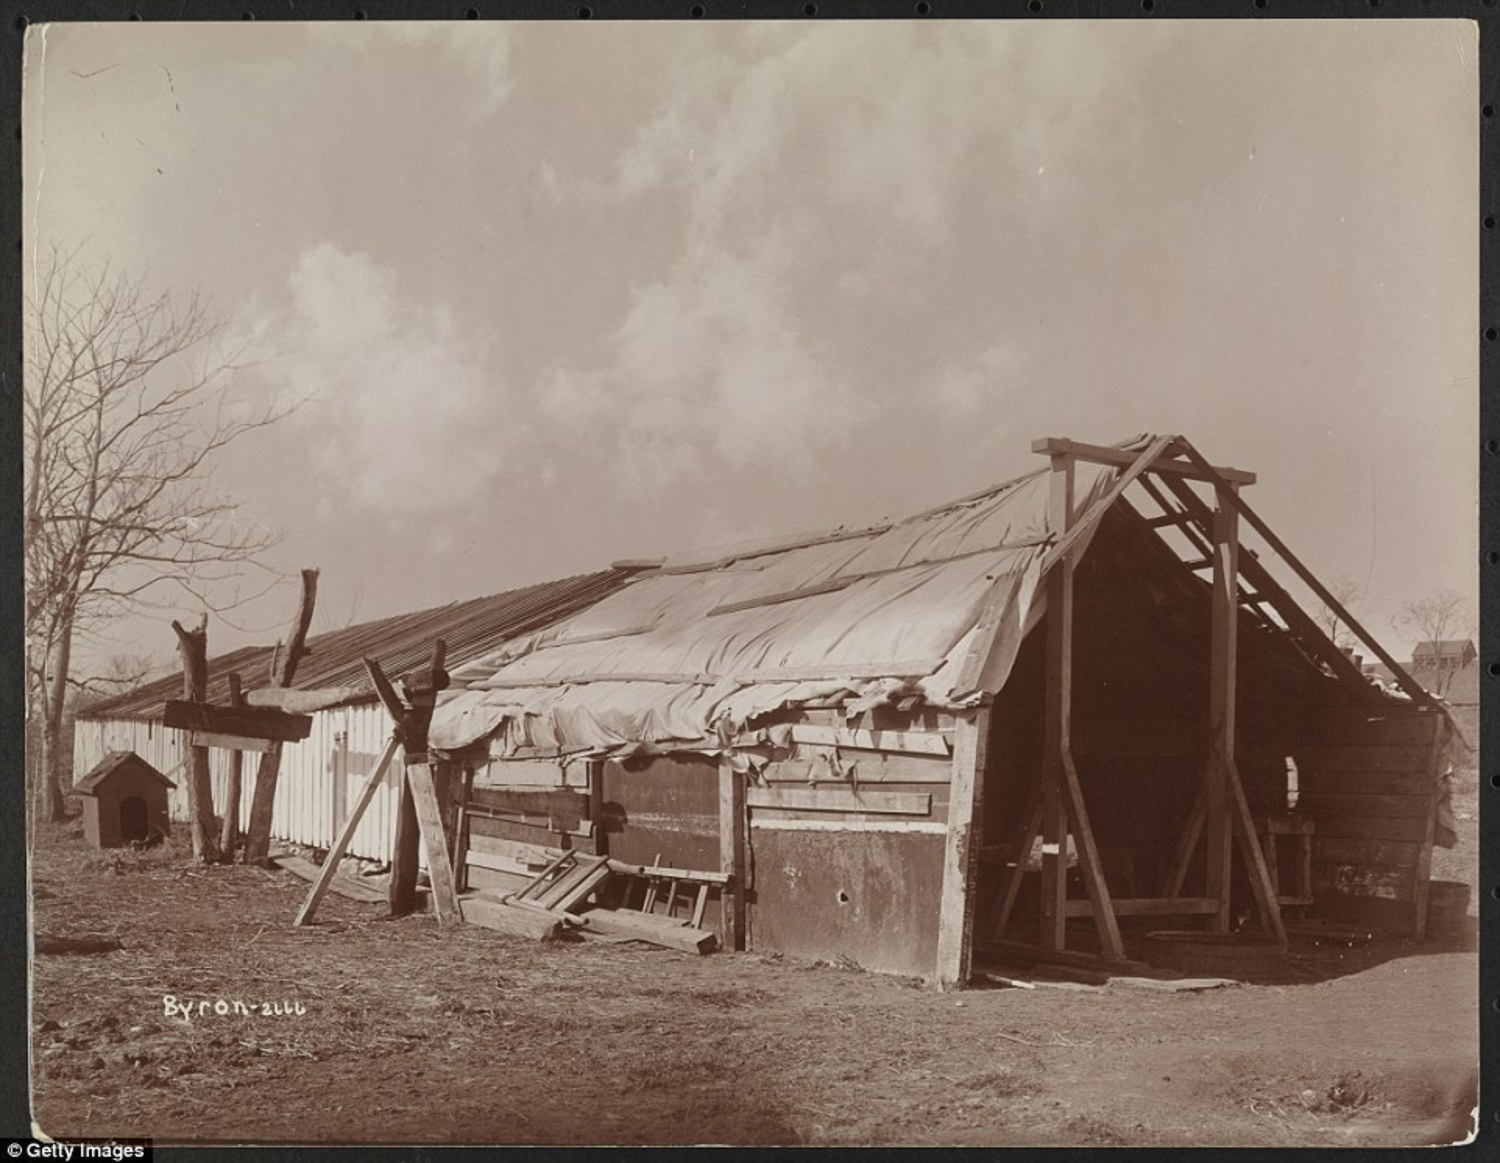 Poorly constructed barn or outbuilding on the grounds of Welfare Island, with a doghouse visible in 1896. The island was originally used as farmland by Dutch and English settlers